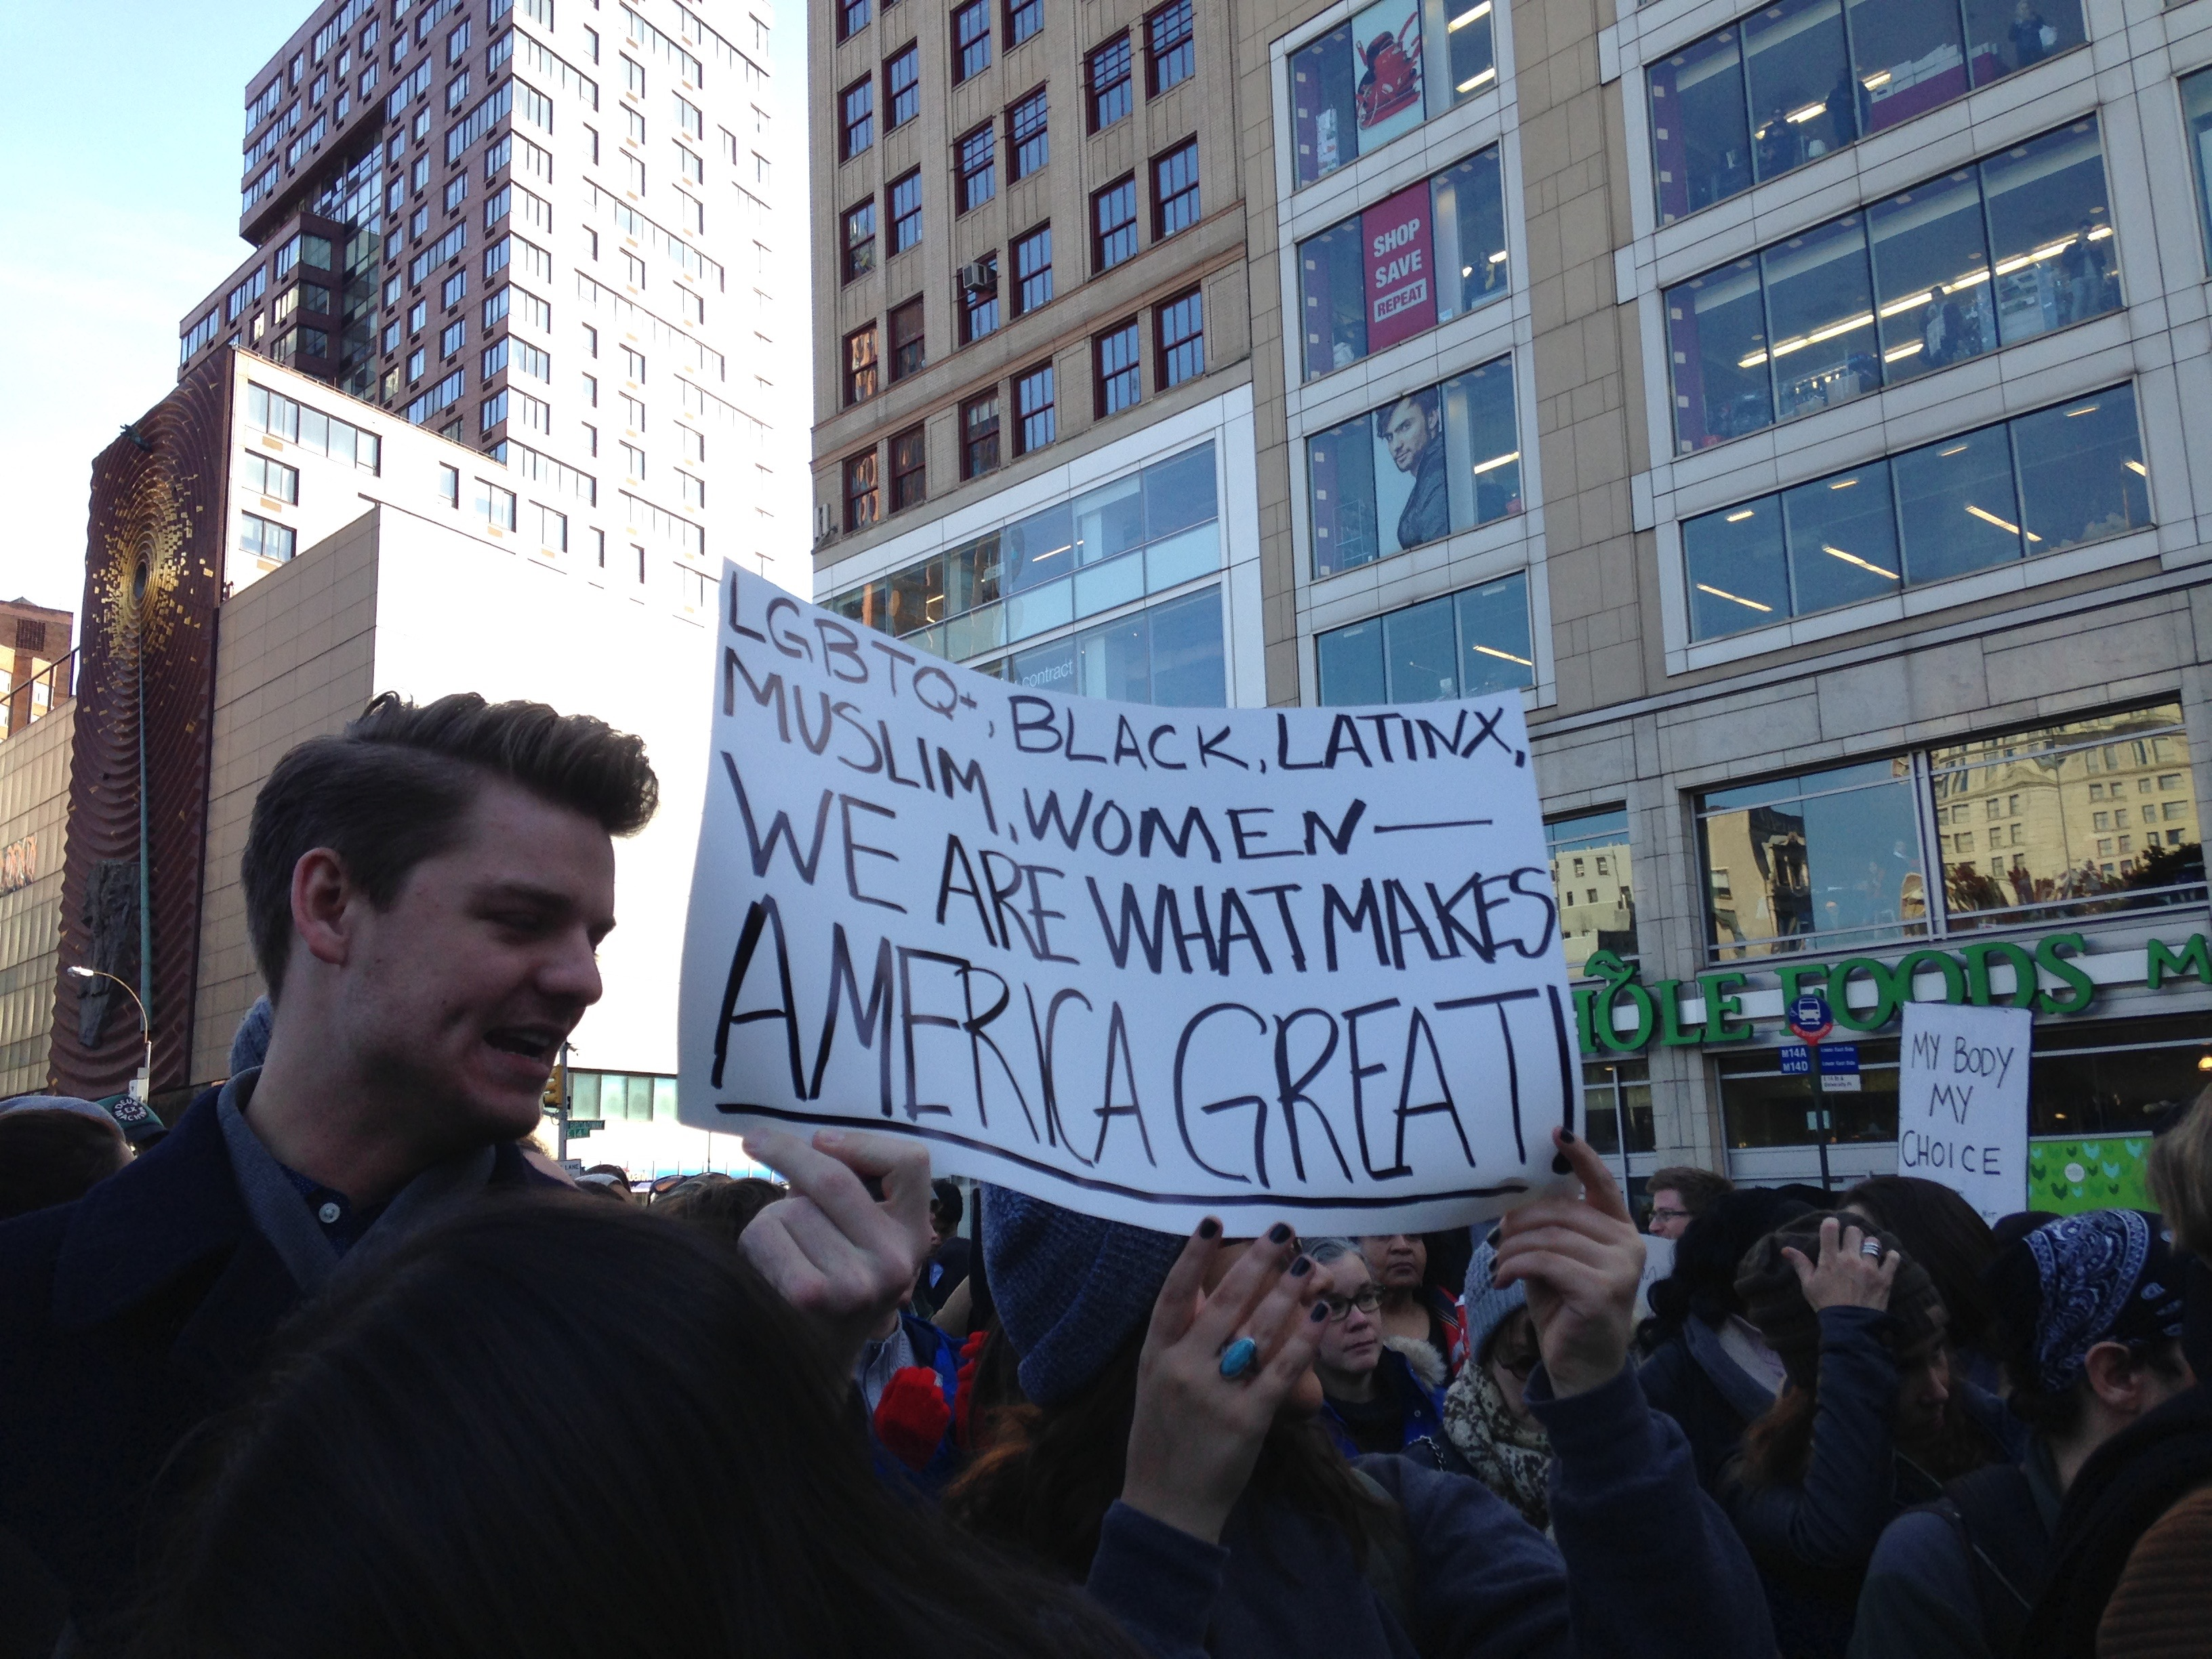 manifestation_anti-trump-new-york-1